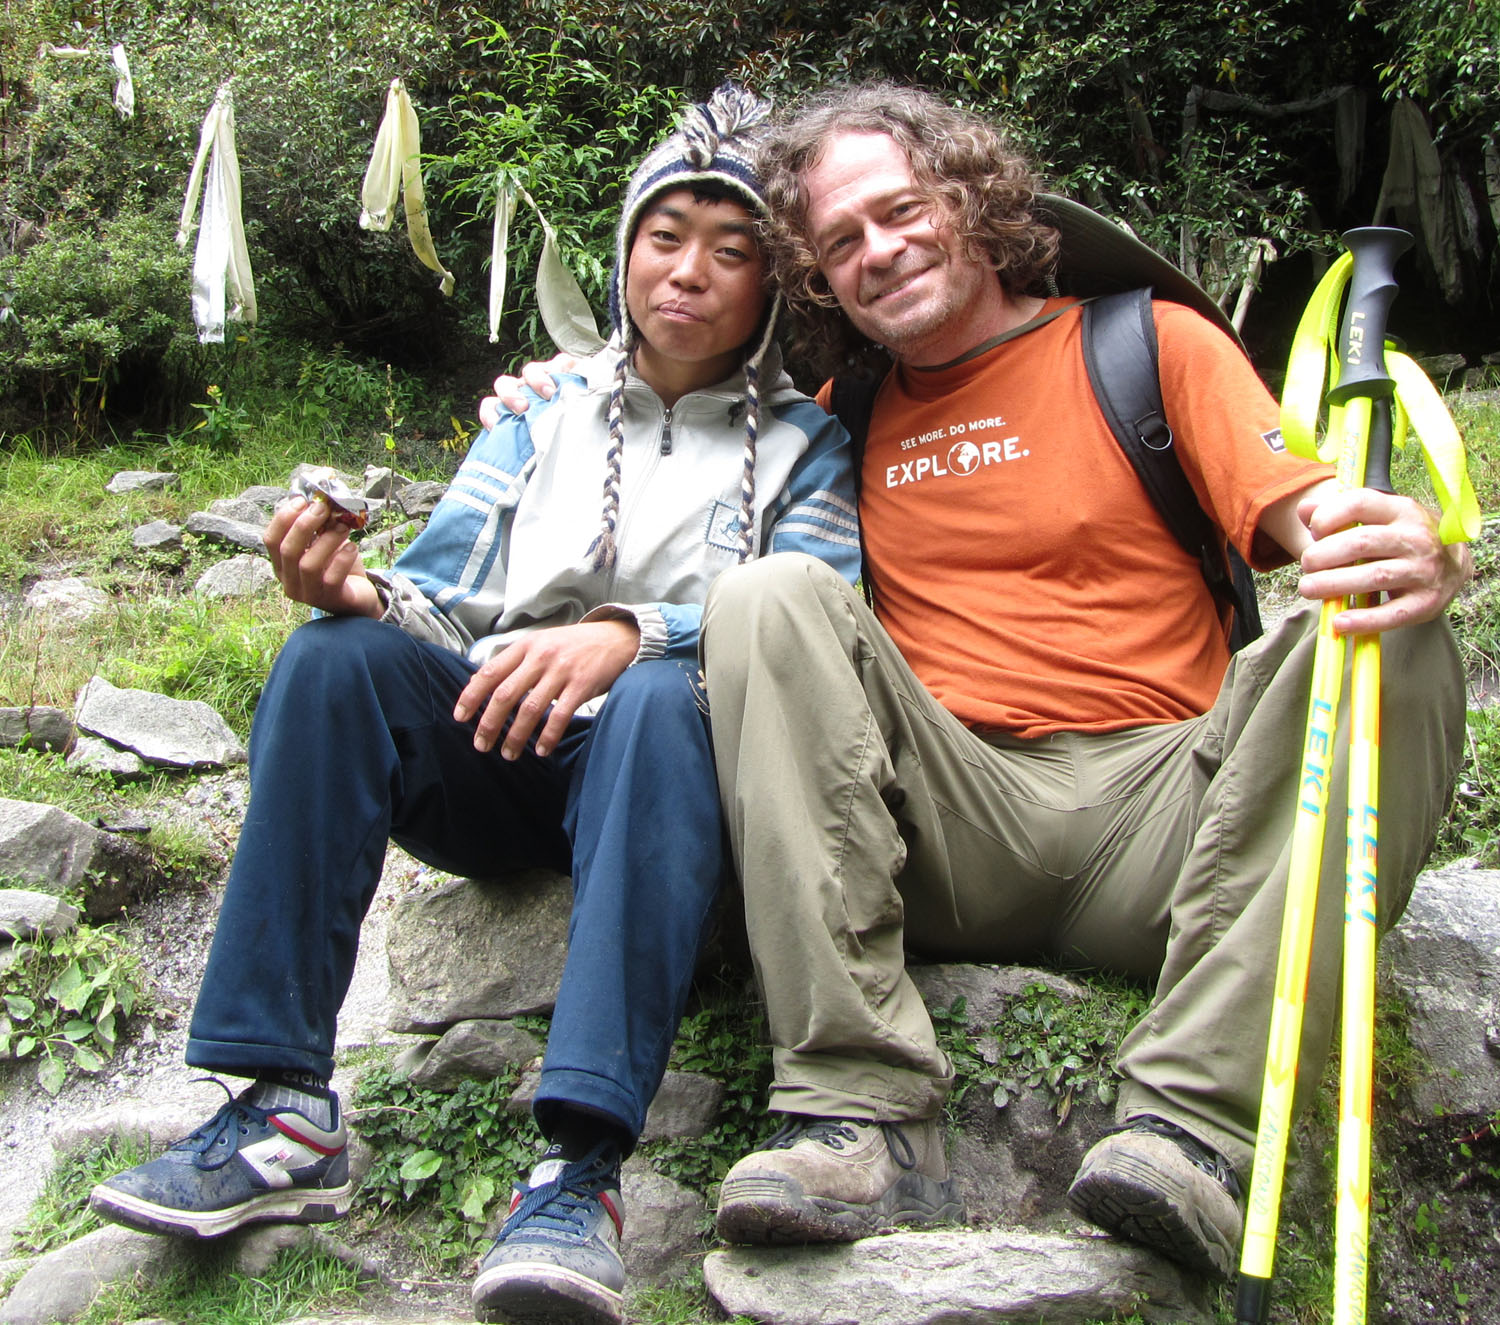 Nepal-Everest-Region-Trek-Day-02-Young-Man